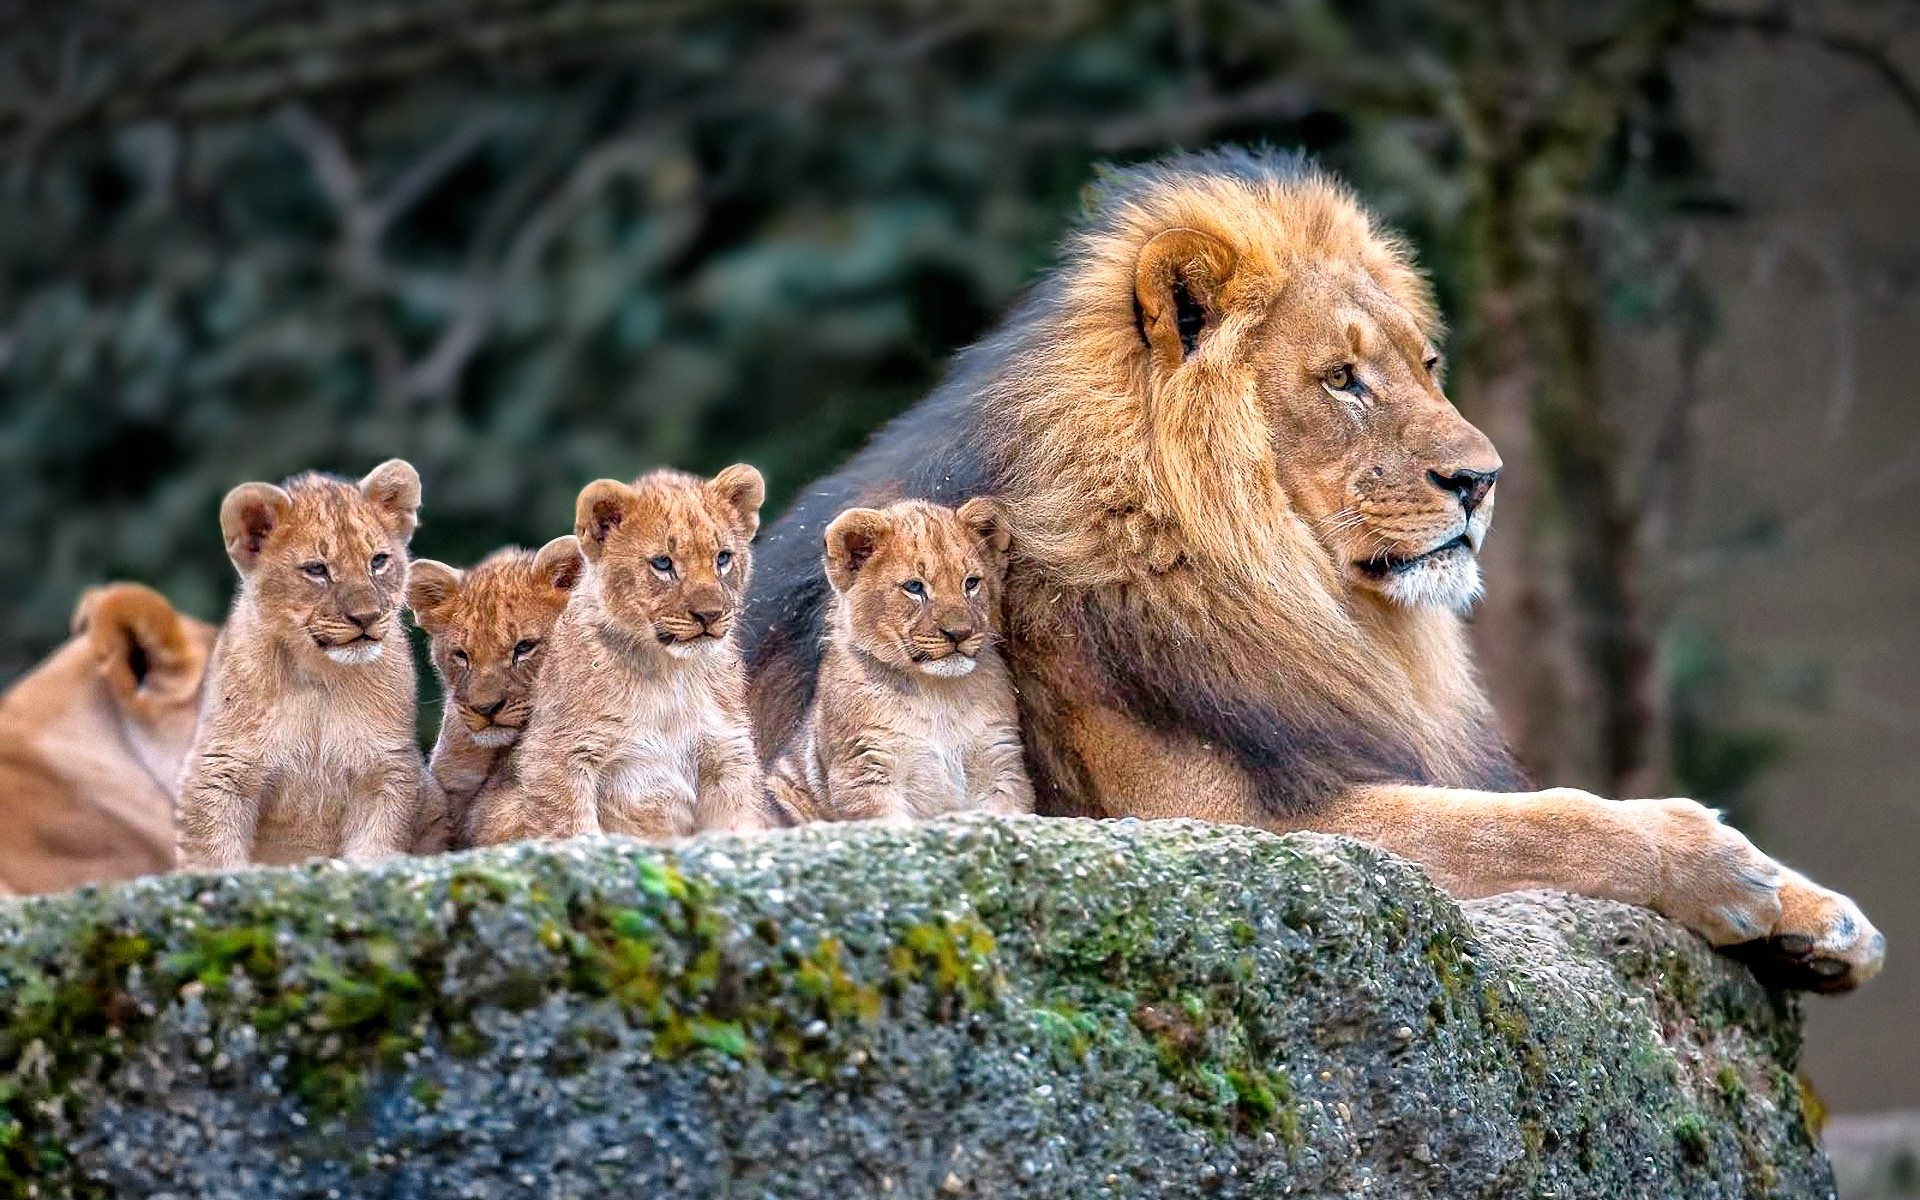 Lion, Nature, Animals, Baby Animals Wallpapers Hd